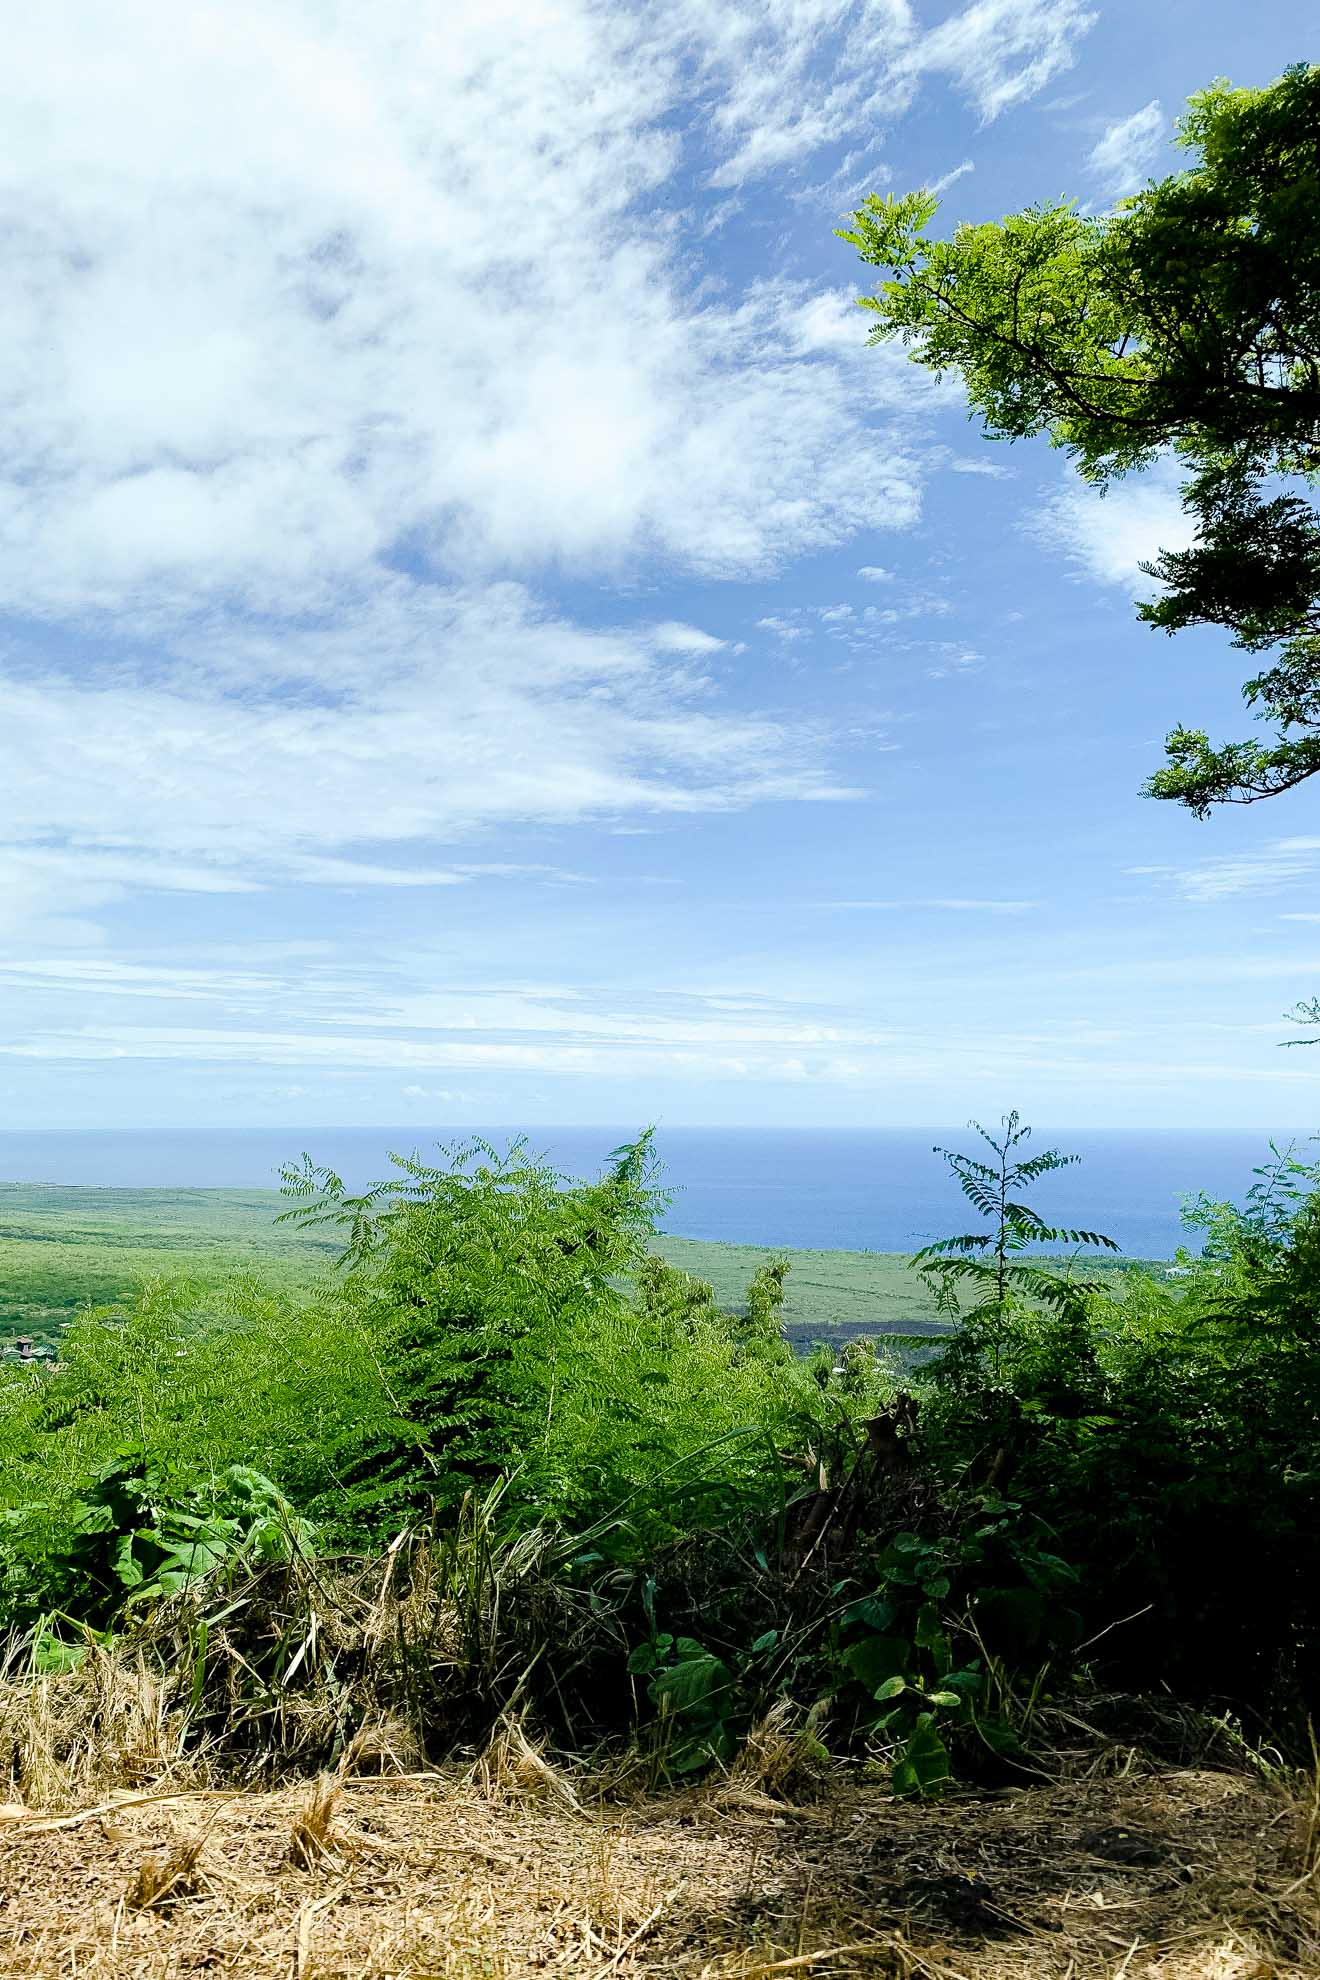 View driving south from Kona to the Place of Refuge on the Big Island of Hawaii